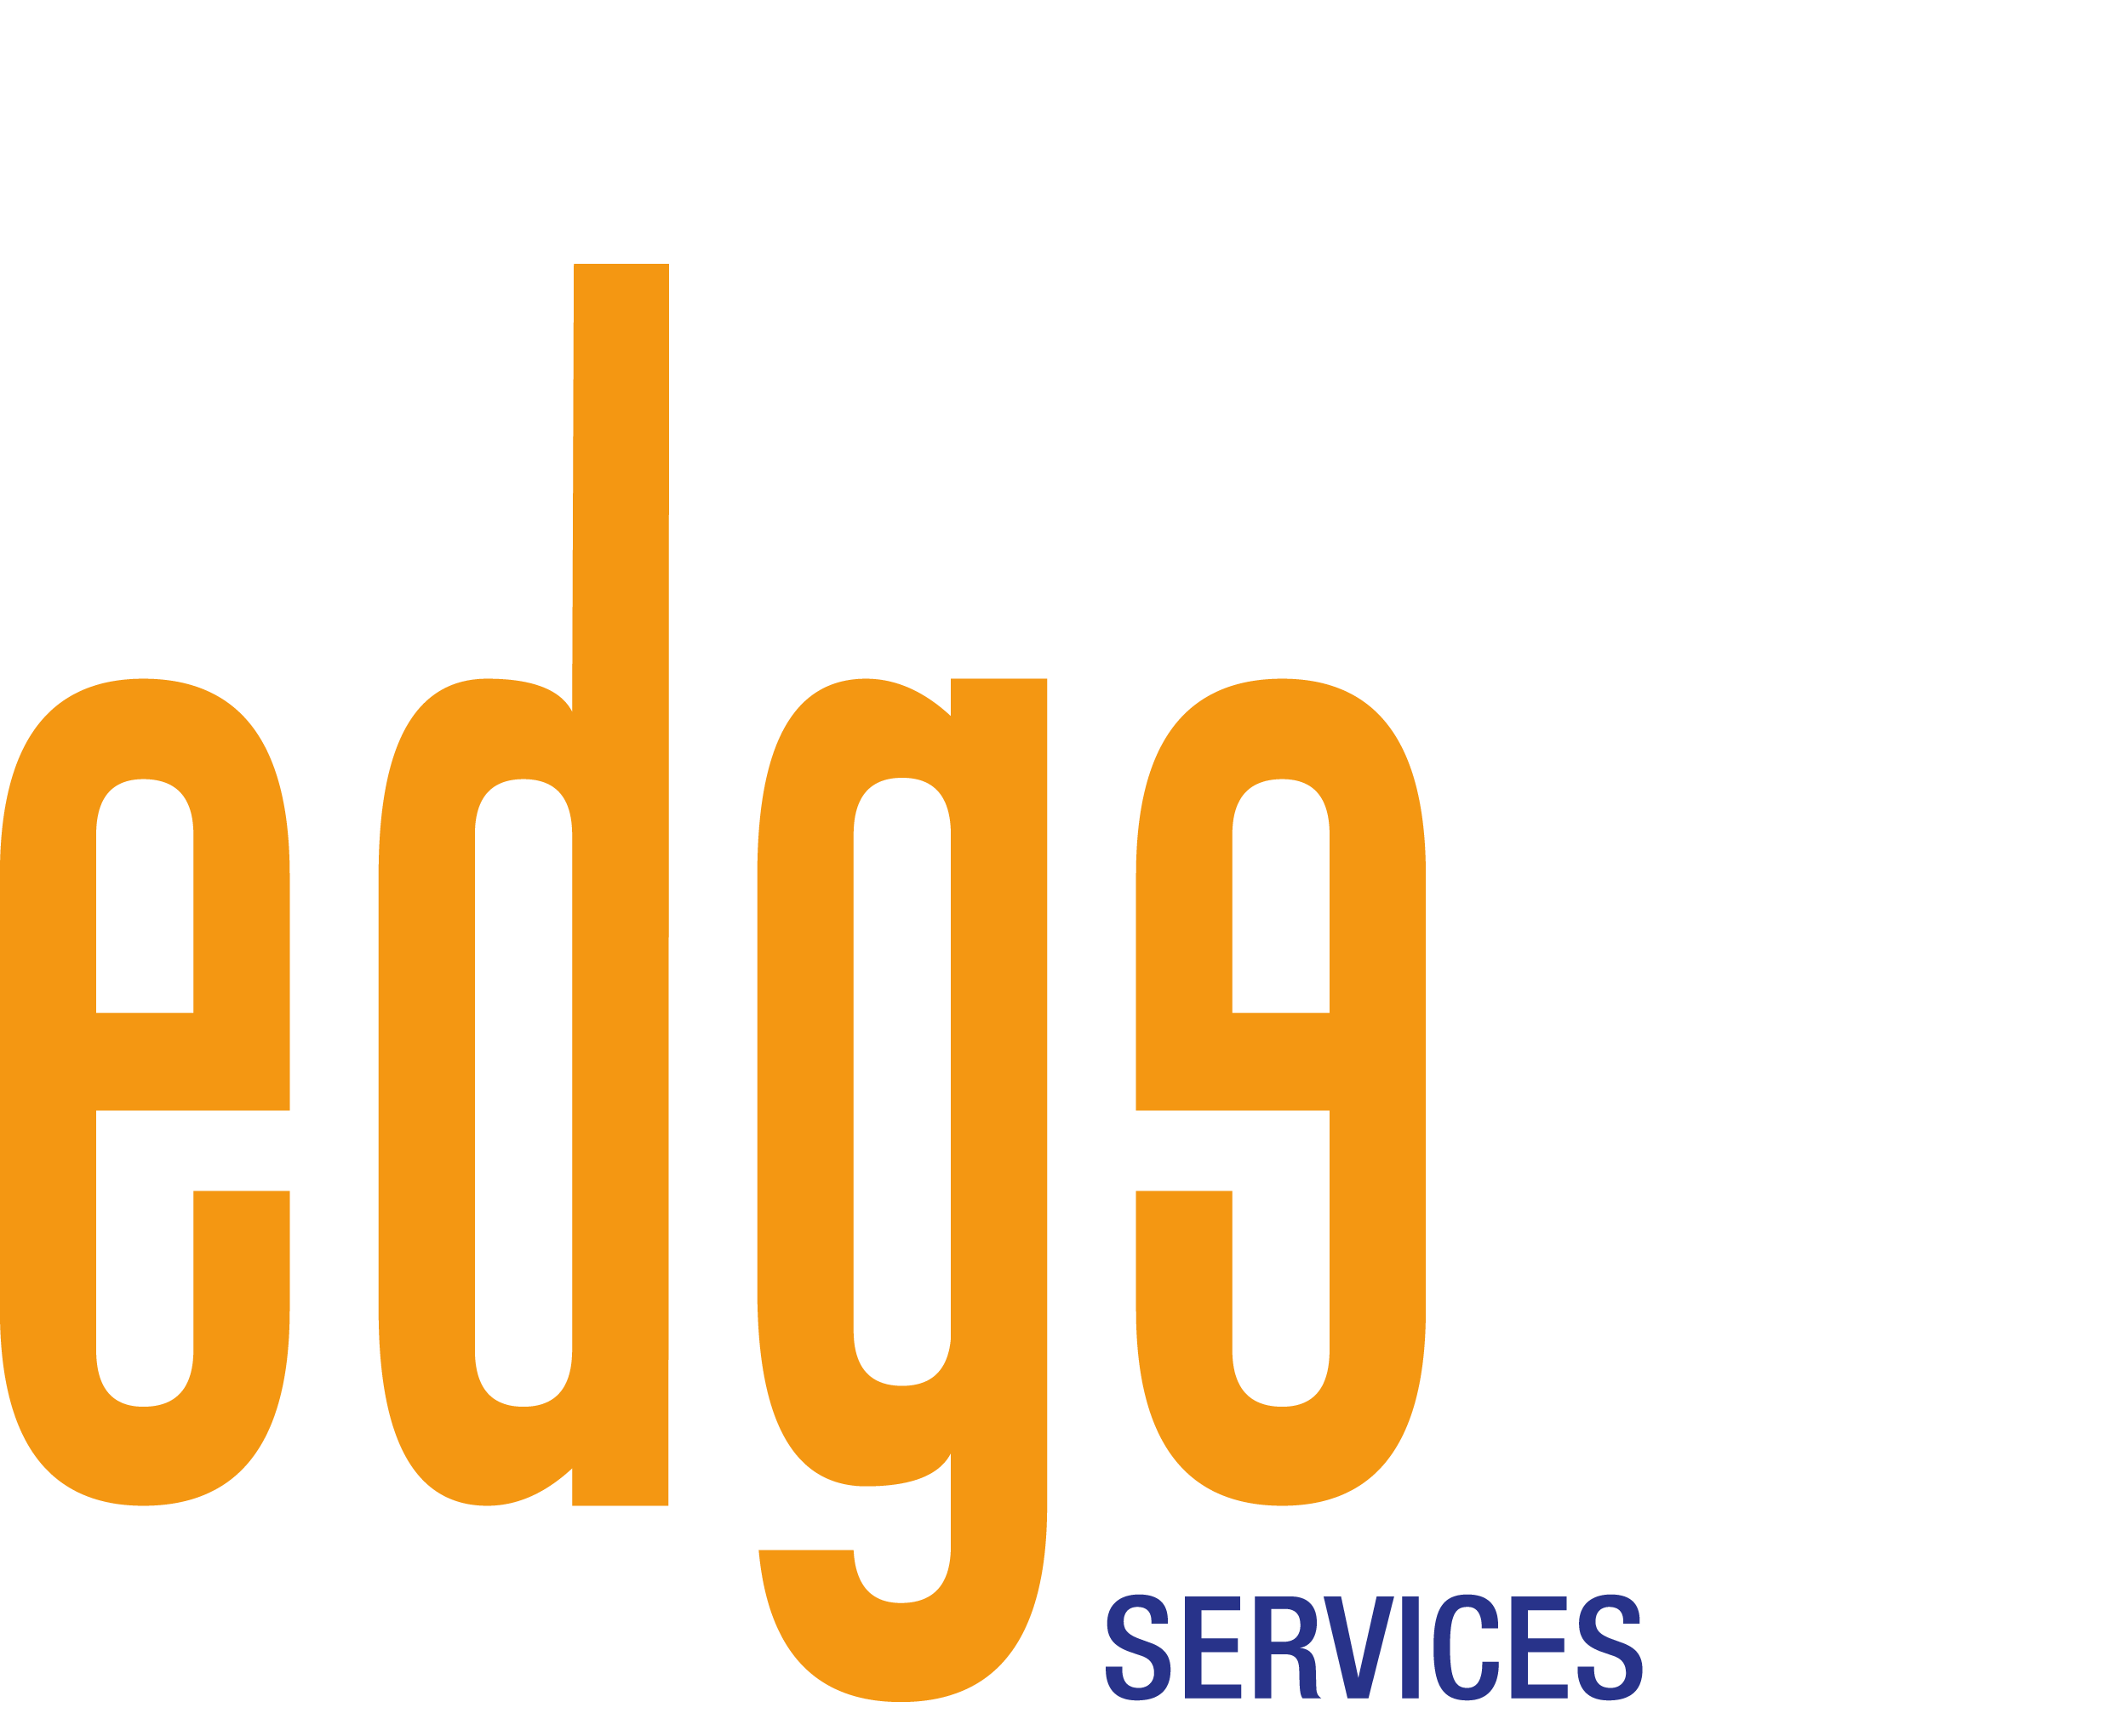 logo-edge-services